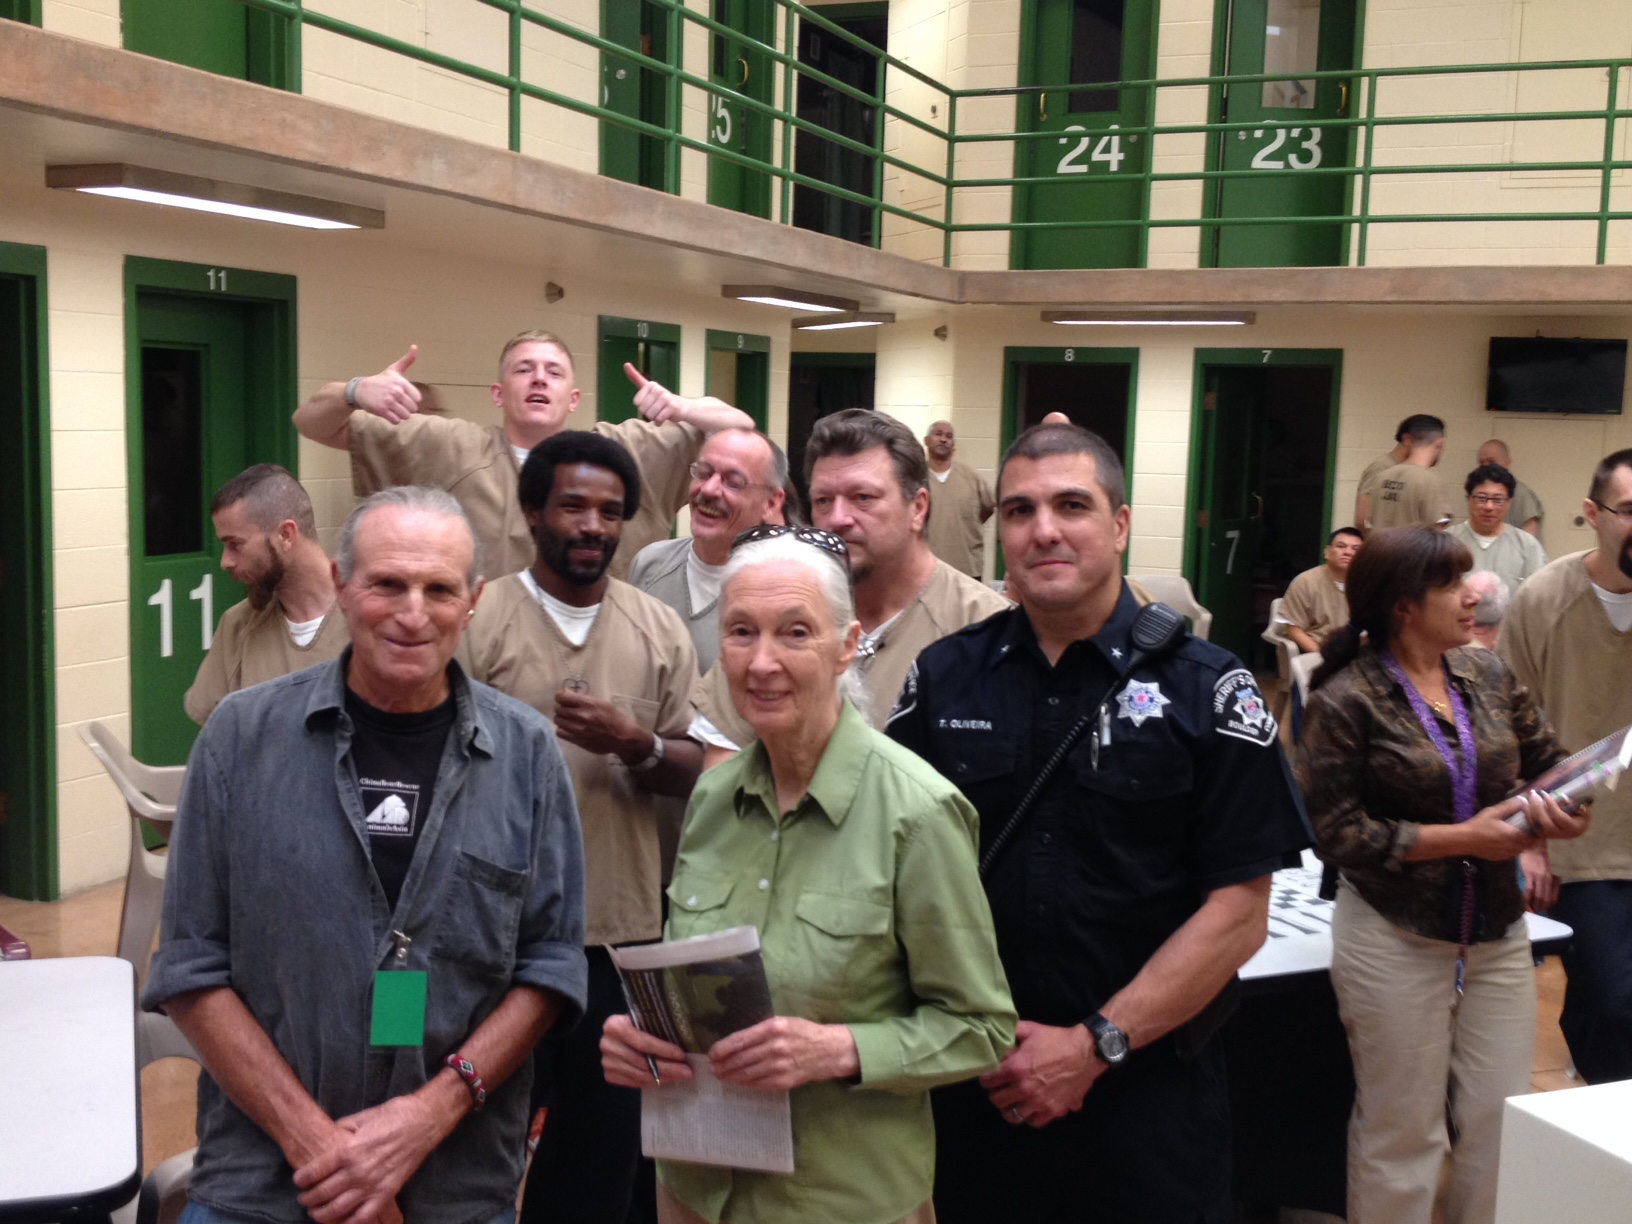 Jane Goodall visited Marc's Roots & Shoots class at the Boulder County Jail in October 2015